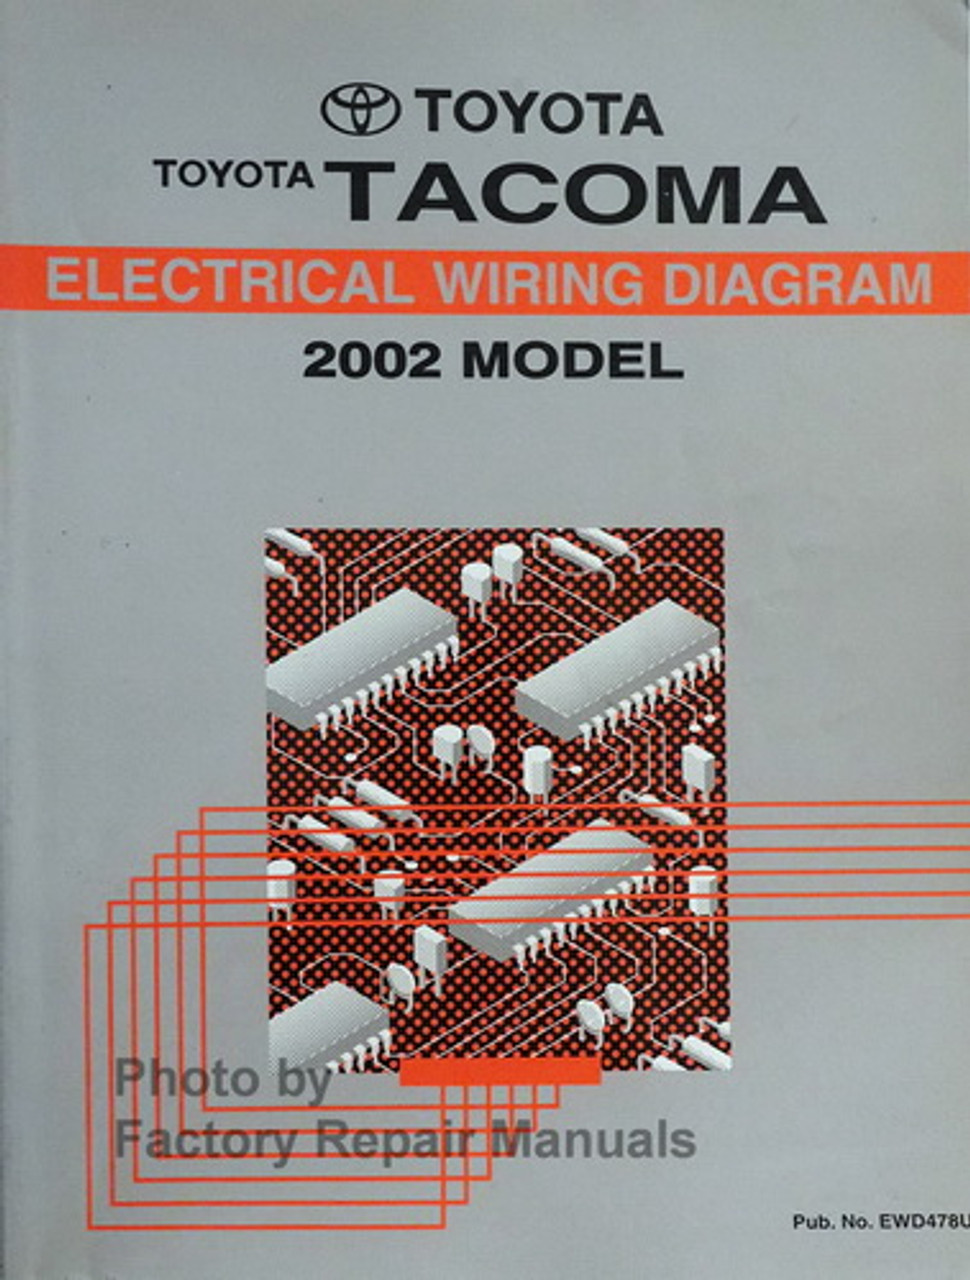 2002 Toyota Tacoma Electrical Wiring Diagrams Original Manual - Factory  Repair ManualsFactory Repair Manuals